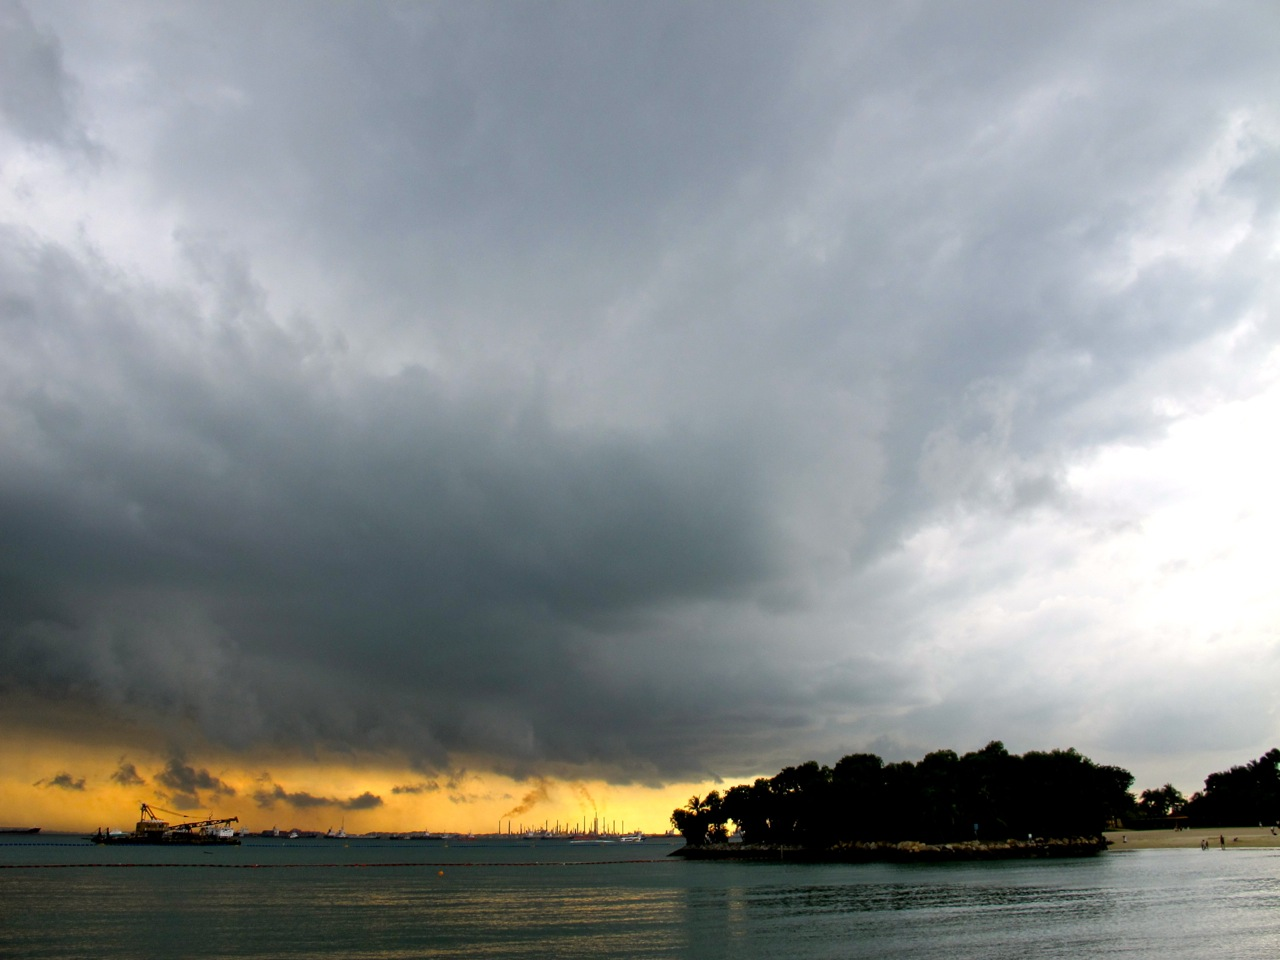 Clouds over Sentosa Island